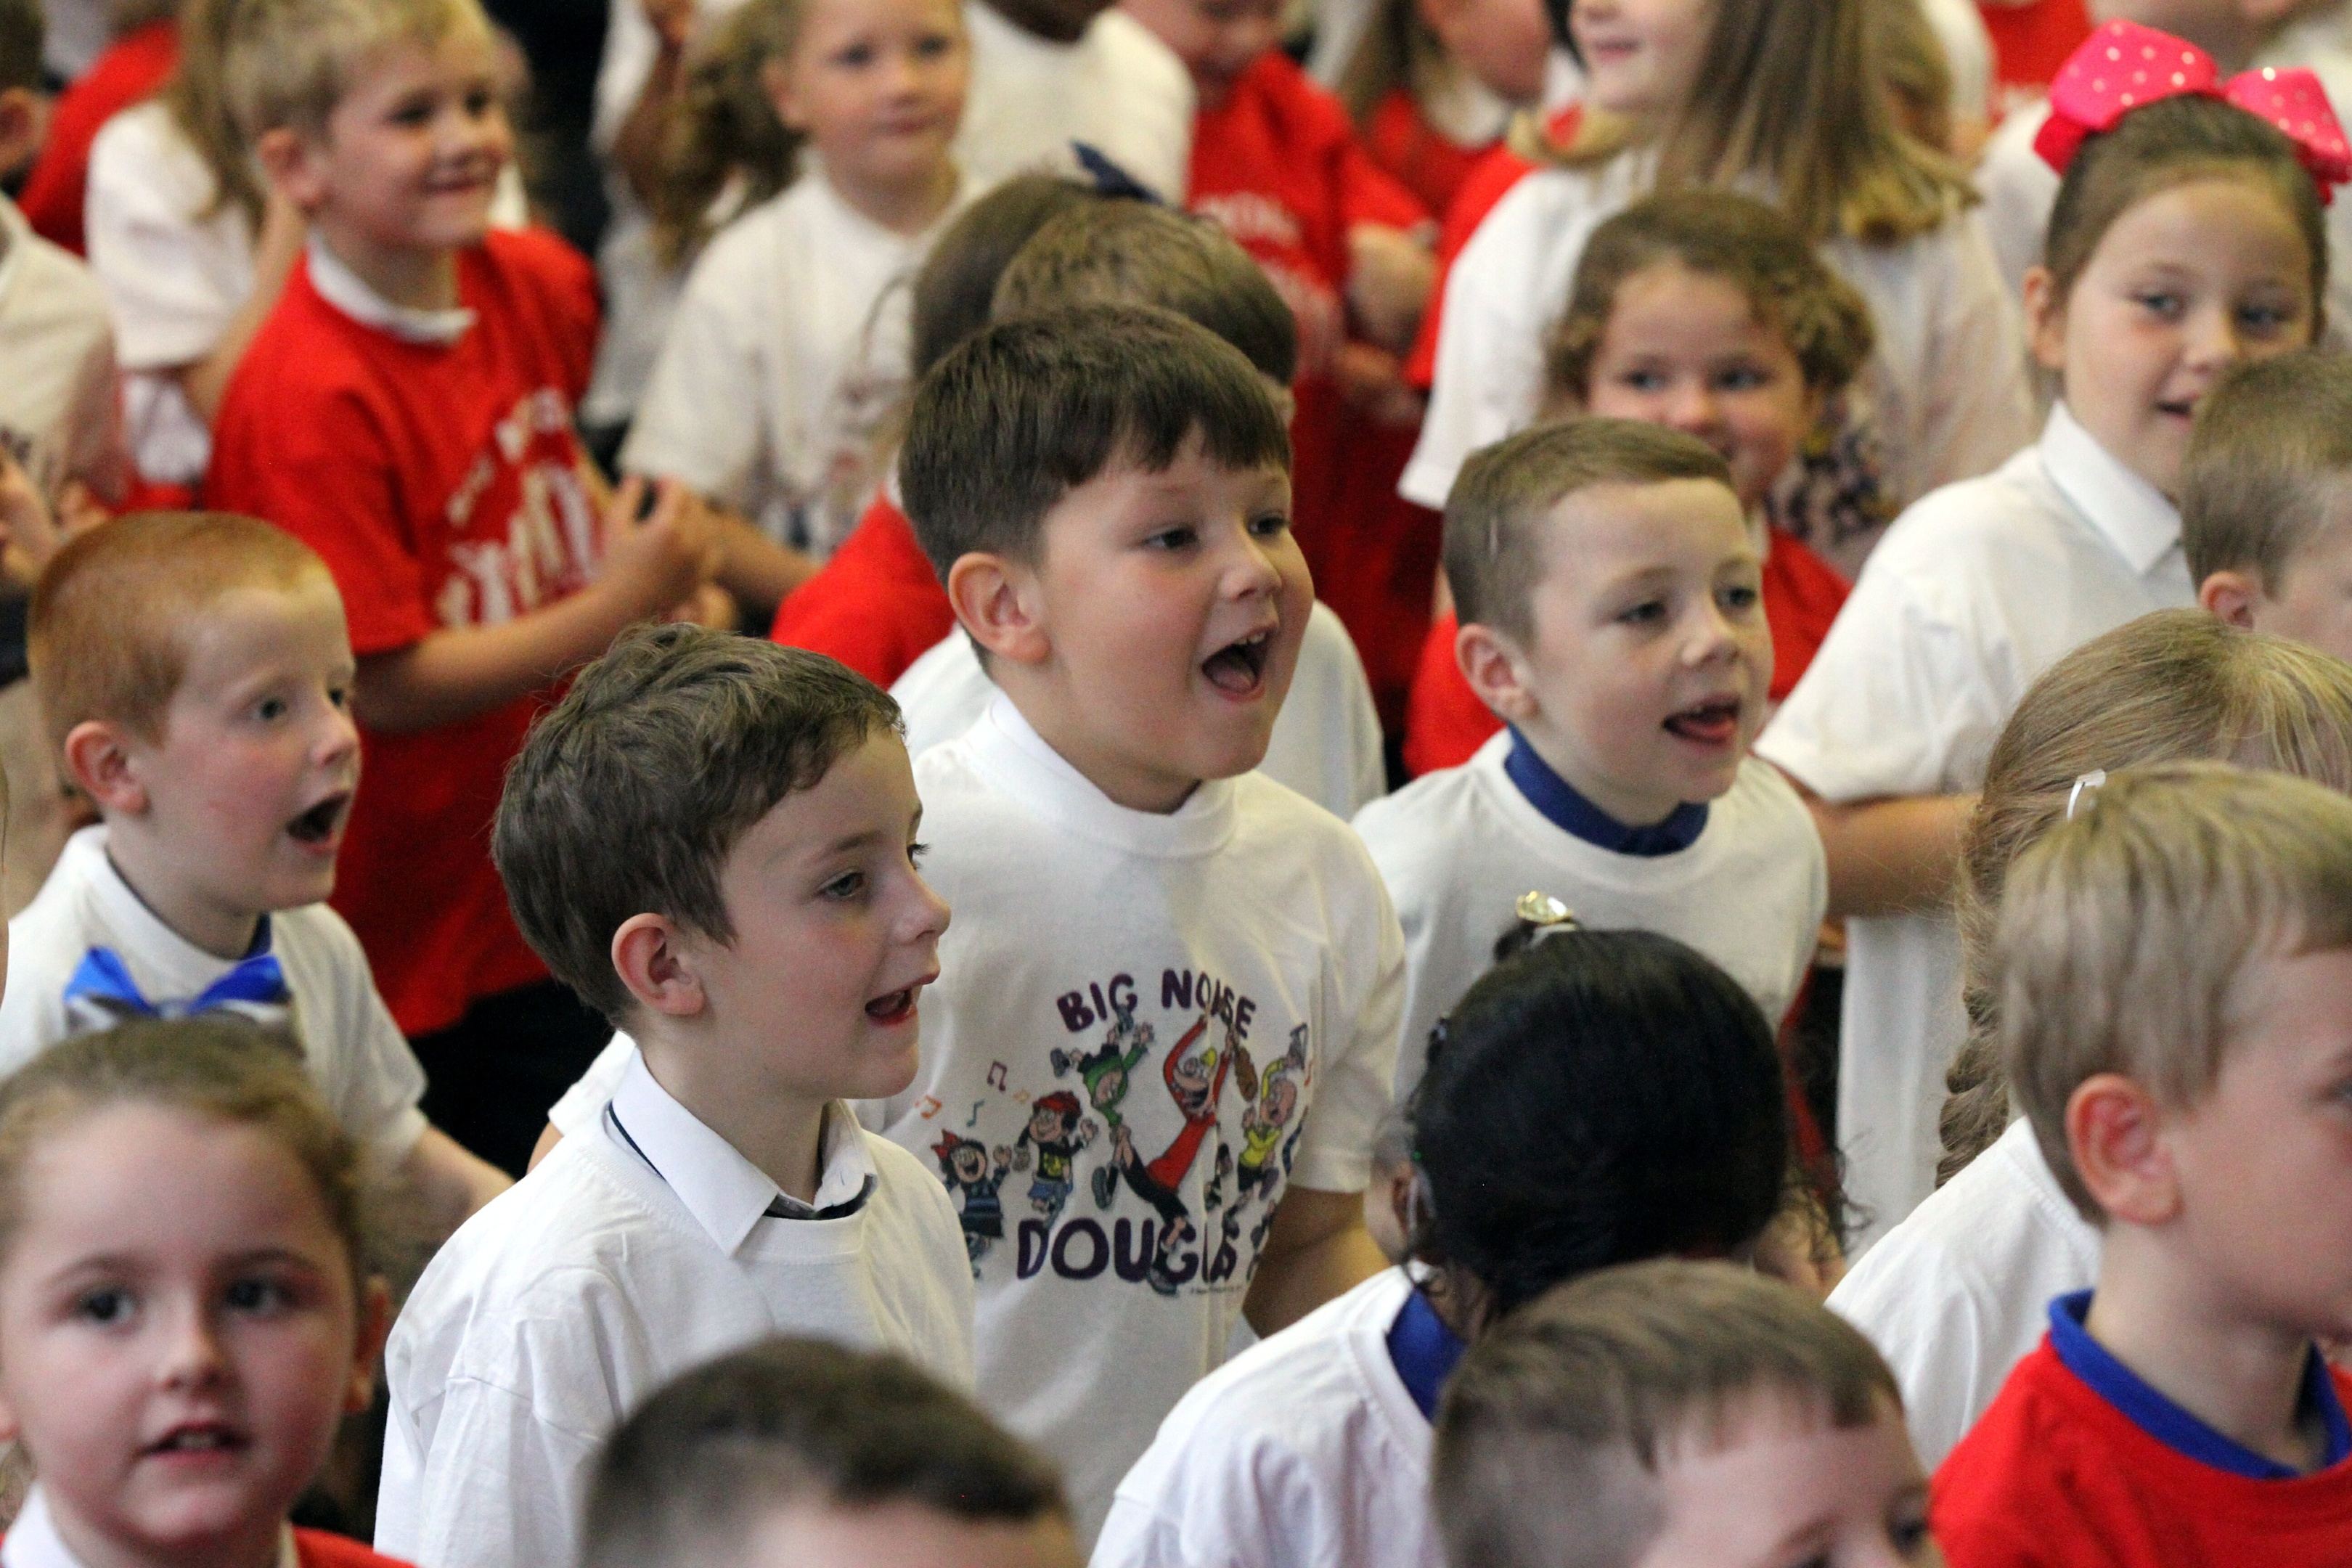 Excitement among the pupils the the Big Noise Douglas launch.